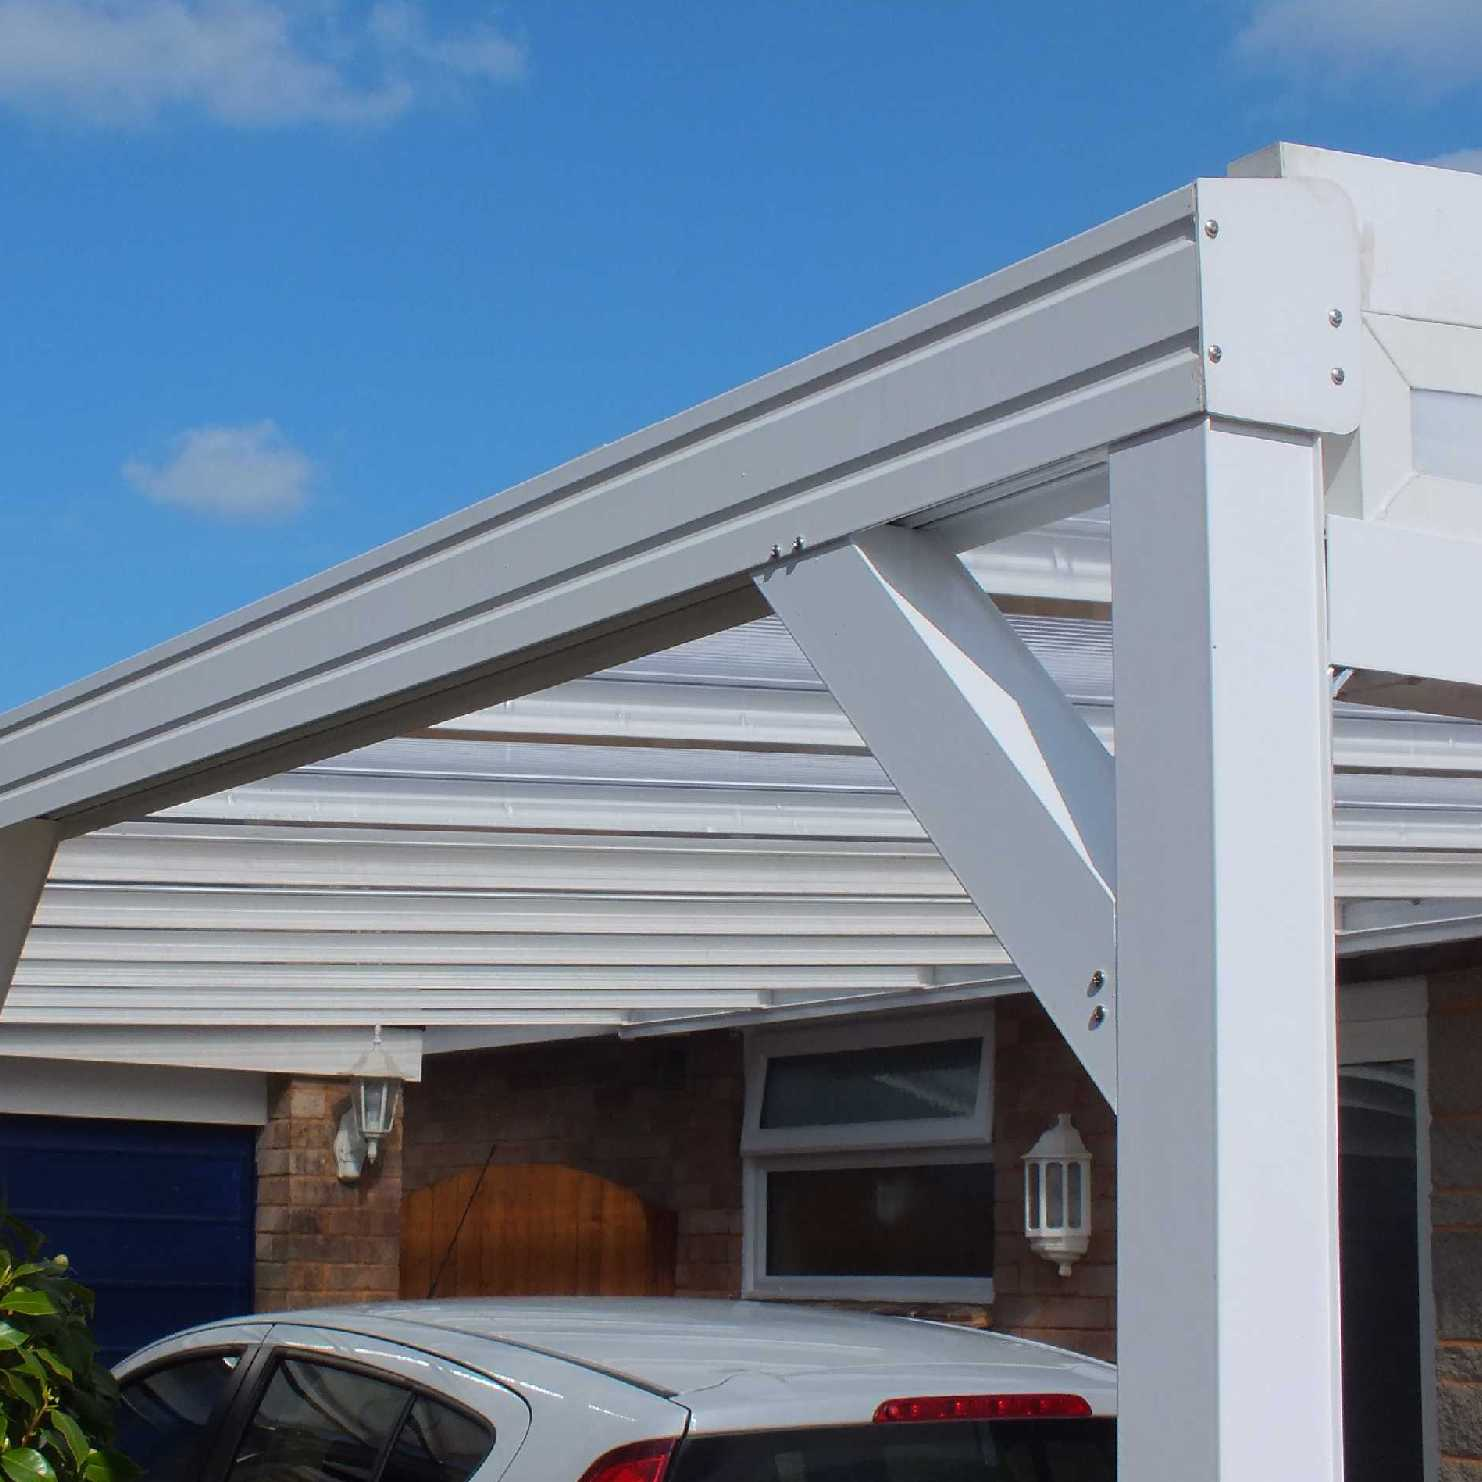 Great deals on Omega Smart White Lean-To Canopy with 16mm Polycarbonate Glazing - 6.0m (W) x 3.0m (P), (3) Supporting Posts